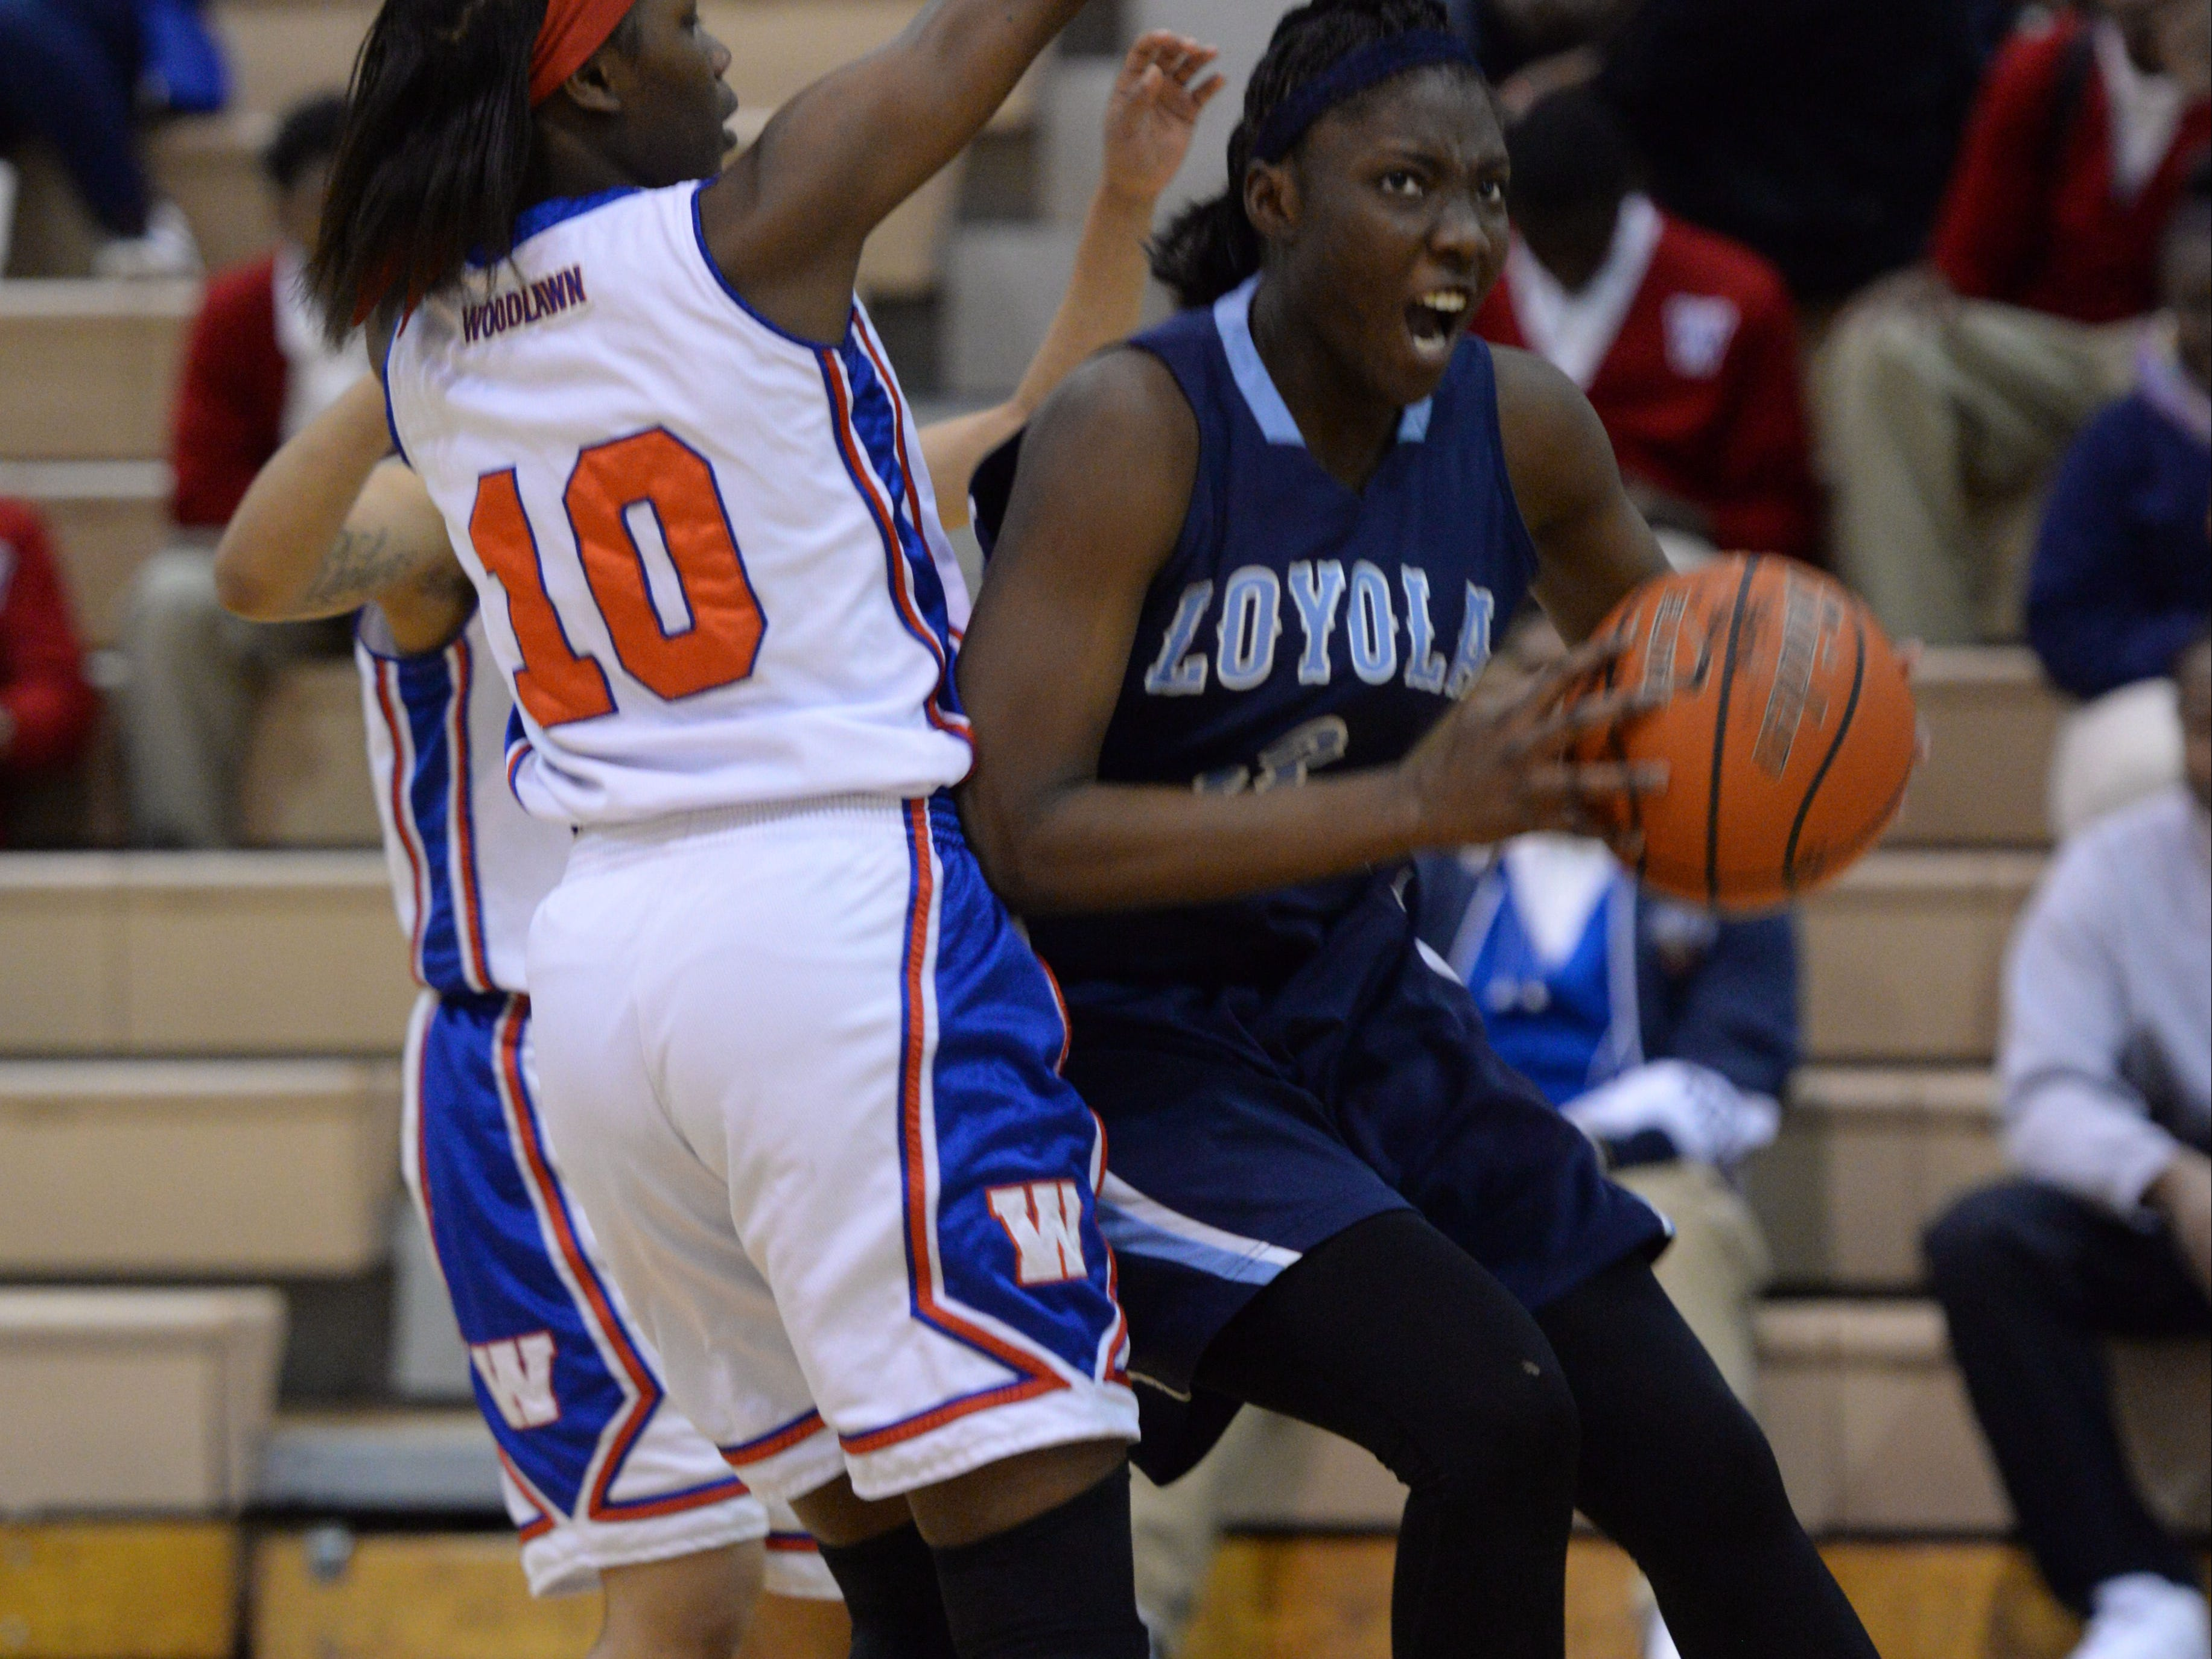 Amber Smith of Loyola drives past Woodlawn's Aliyah Carter during Friday night's game.